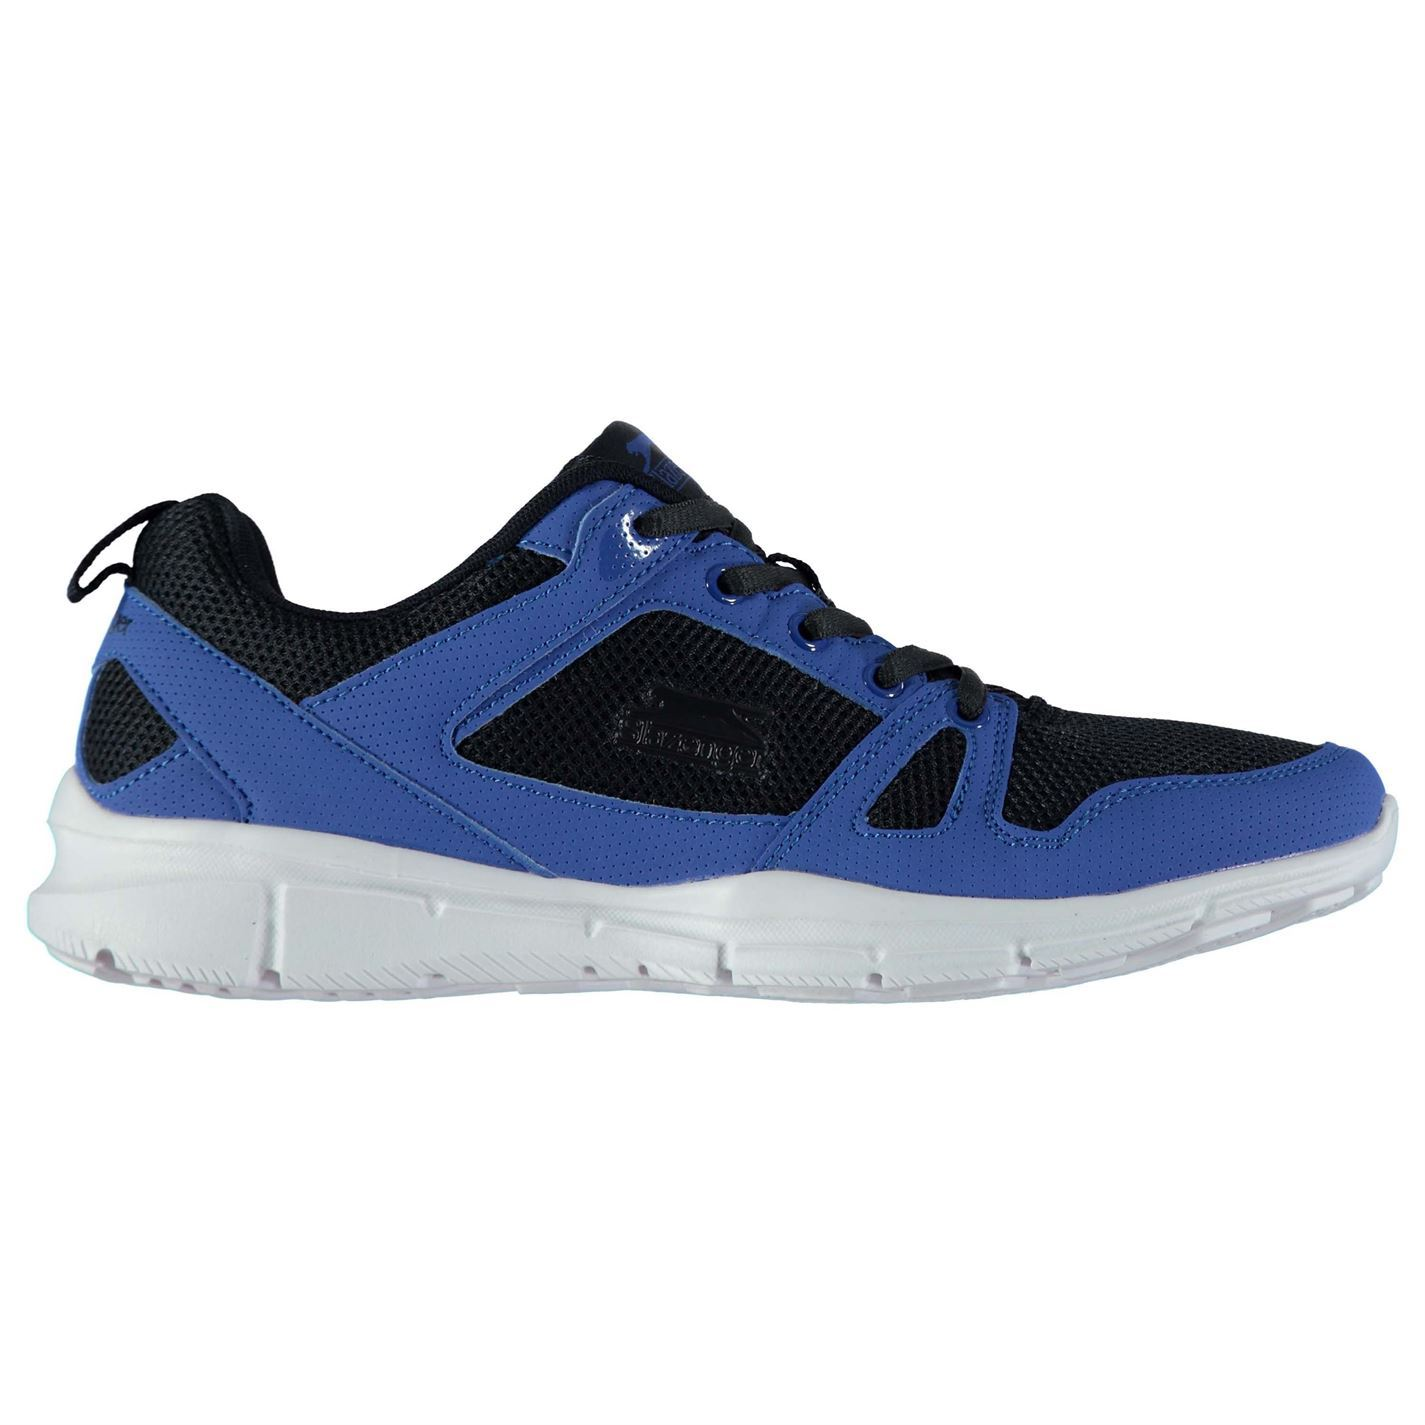 Slazenger-Mens-Force-Mesh-Running-Shoes-Lace-Up-